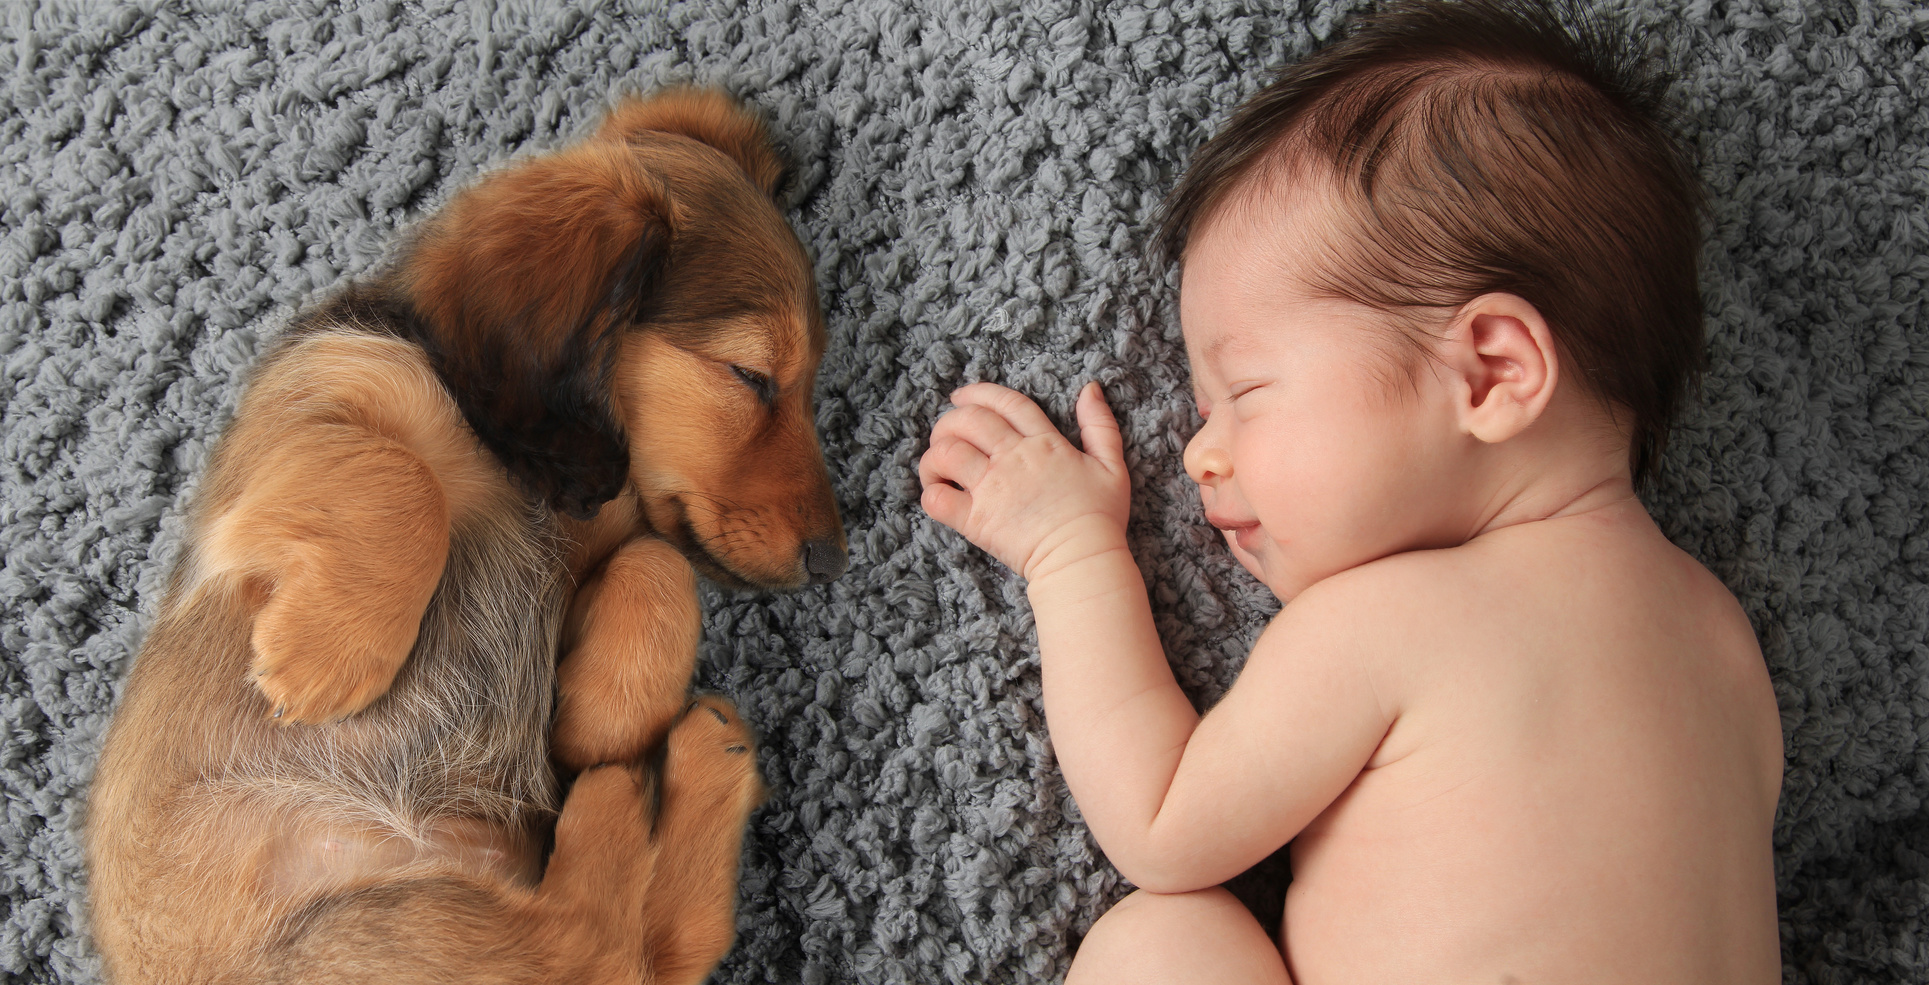 Newborn baby girl sleeping next to a dachshund puppy